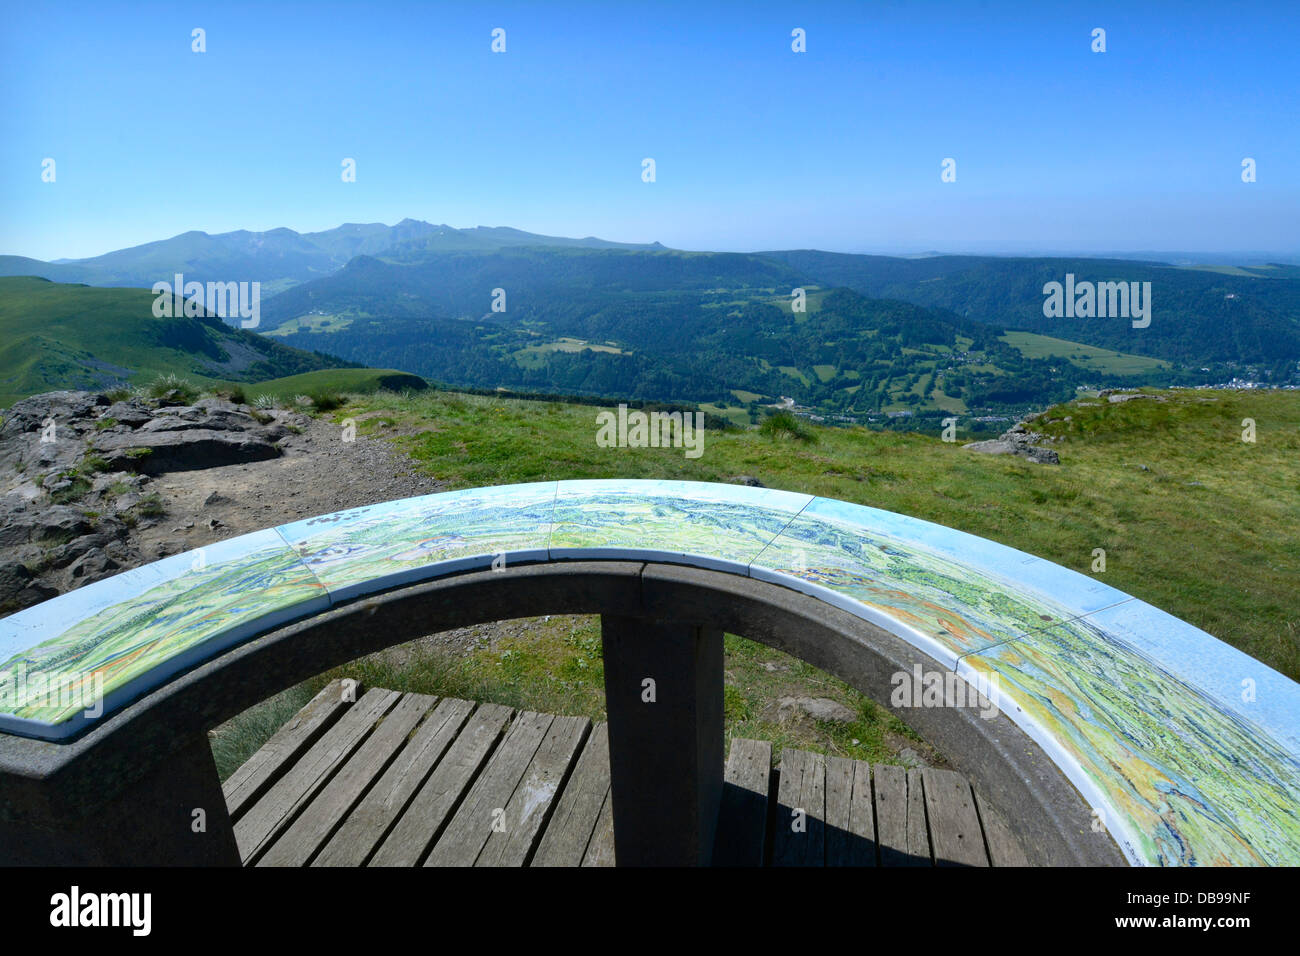 Panoramic view of the viewpoint of the chain of monts Dore. Puy-de-dôme. Auvergne. France. - Stock Image